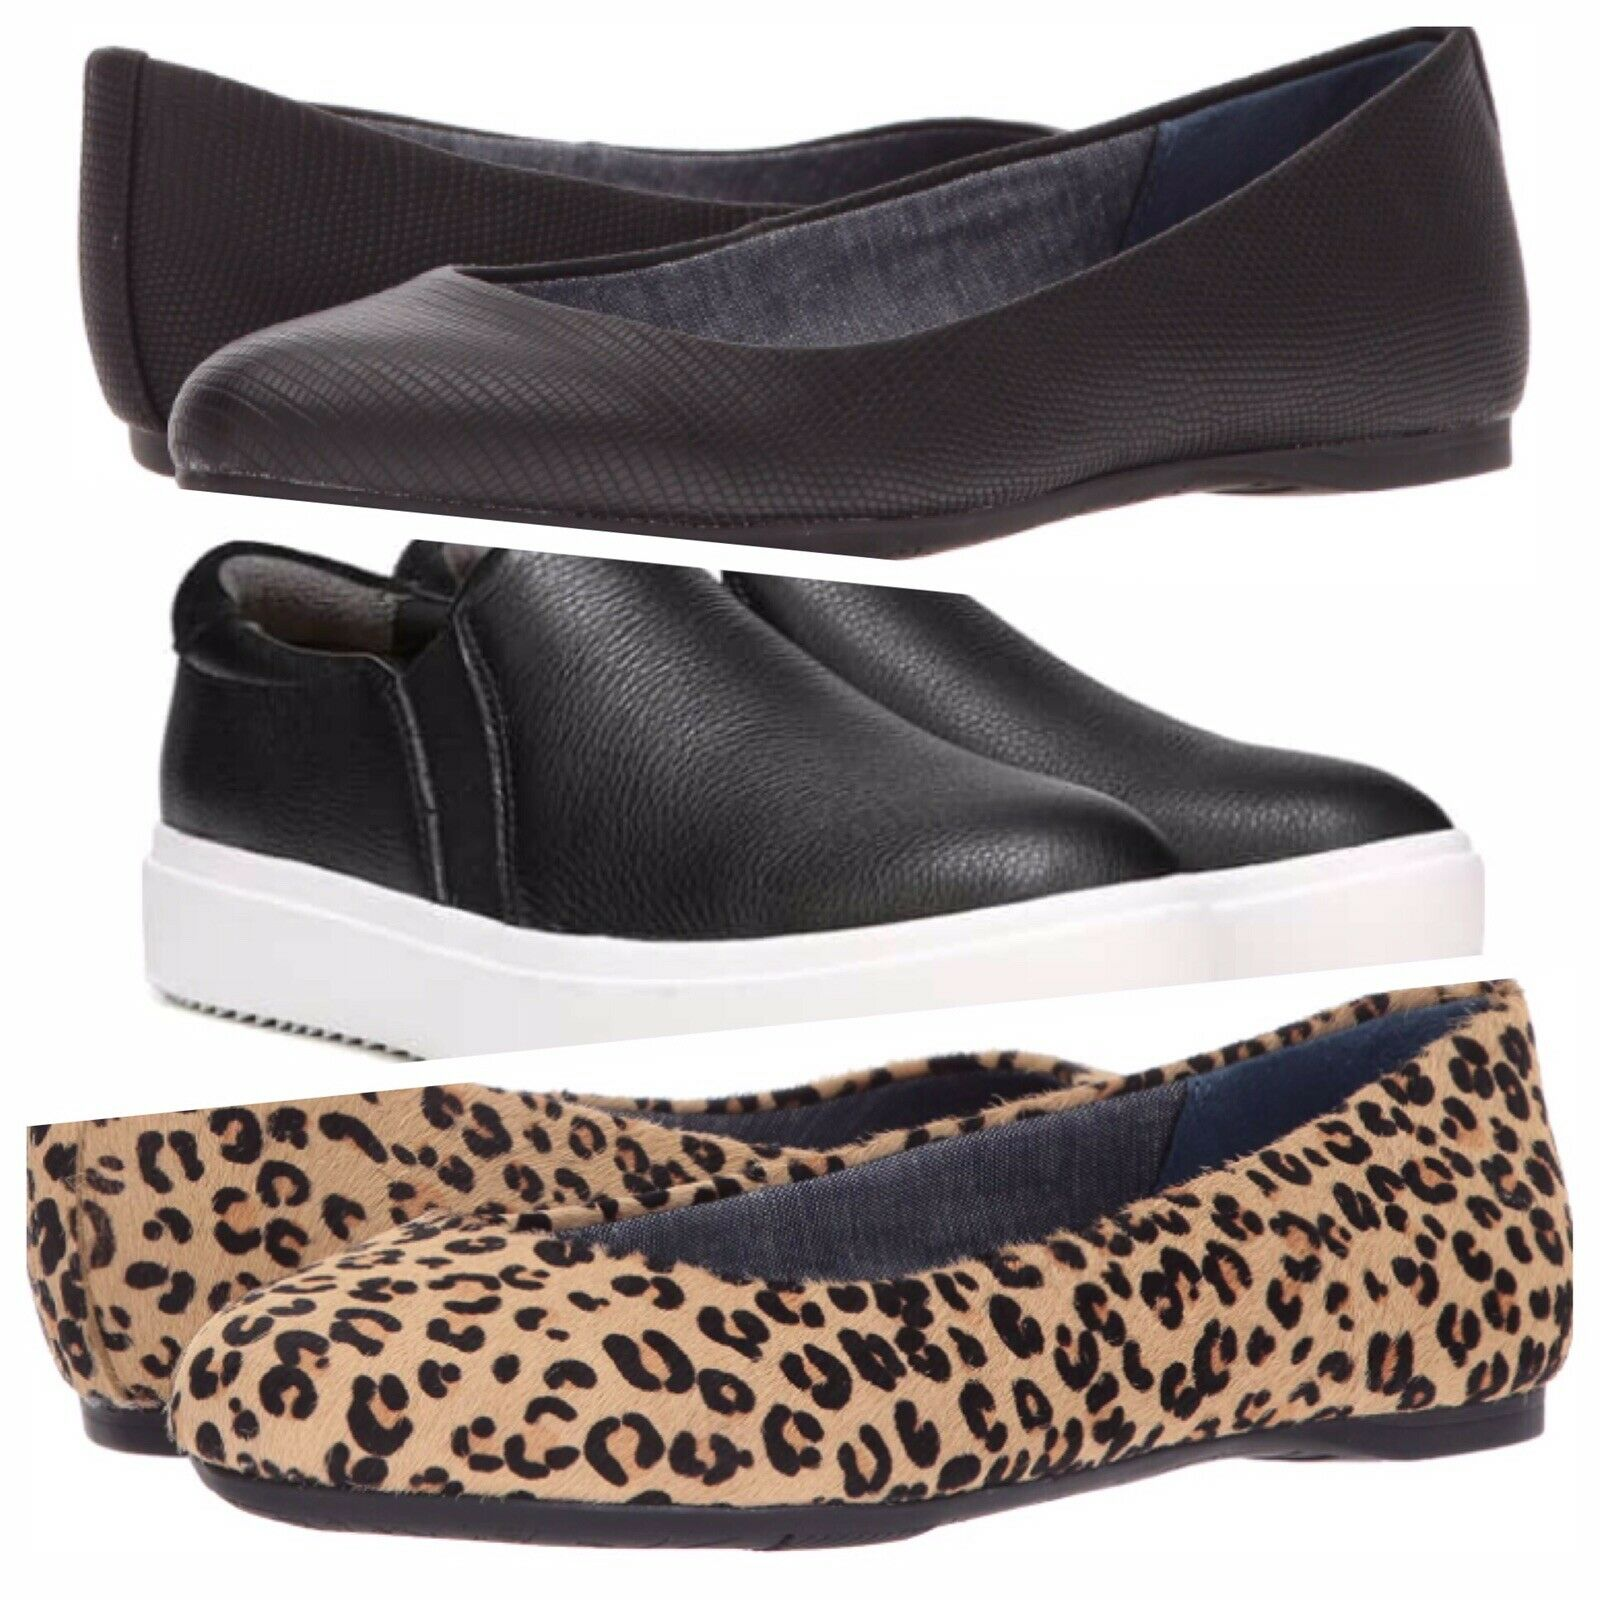 Dr Scholls LETA Slip On Sneaker GIORGIE Ballet Ballet Ballet Flats You Pick One New With Box 57e5ef